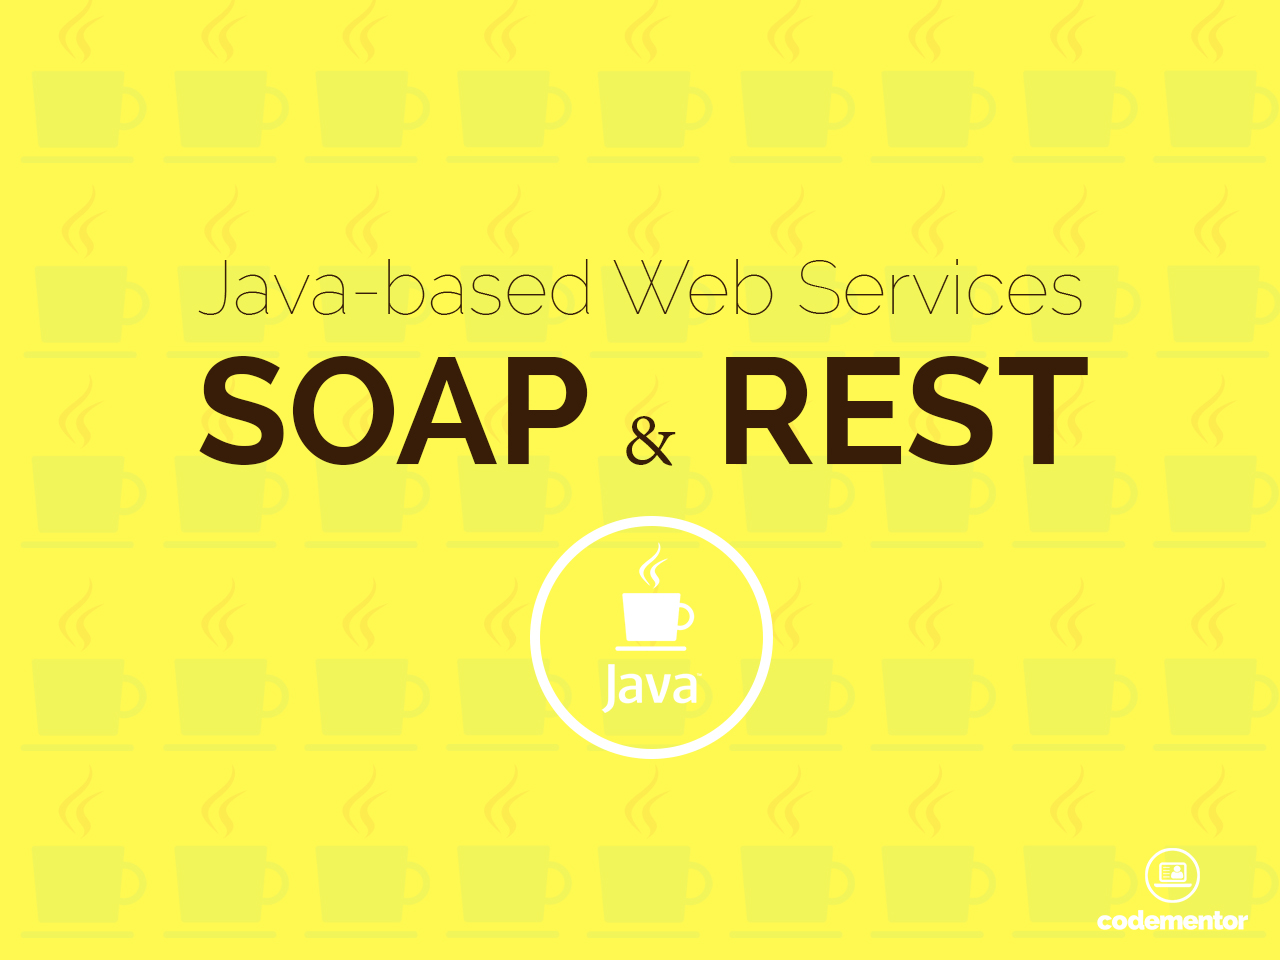 SOAP and REST: Distinguishing Java-based Web Services